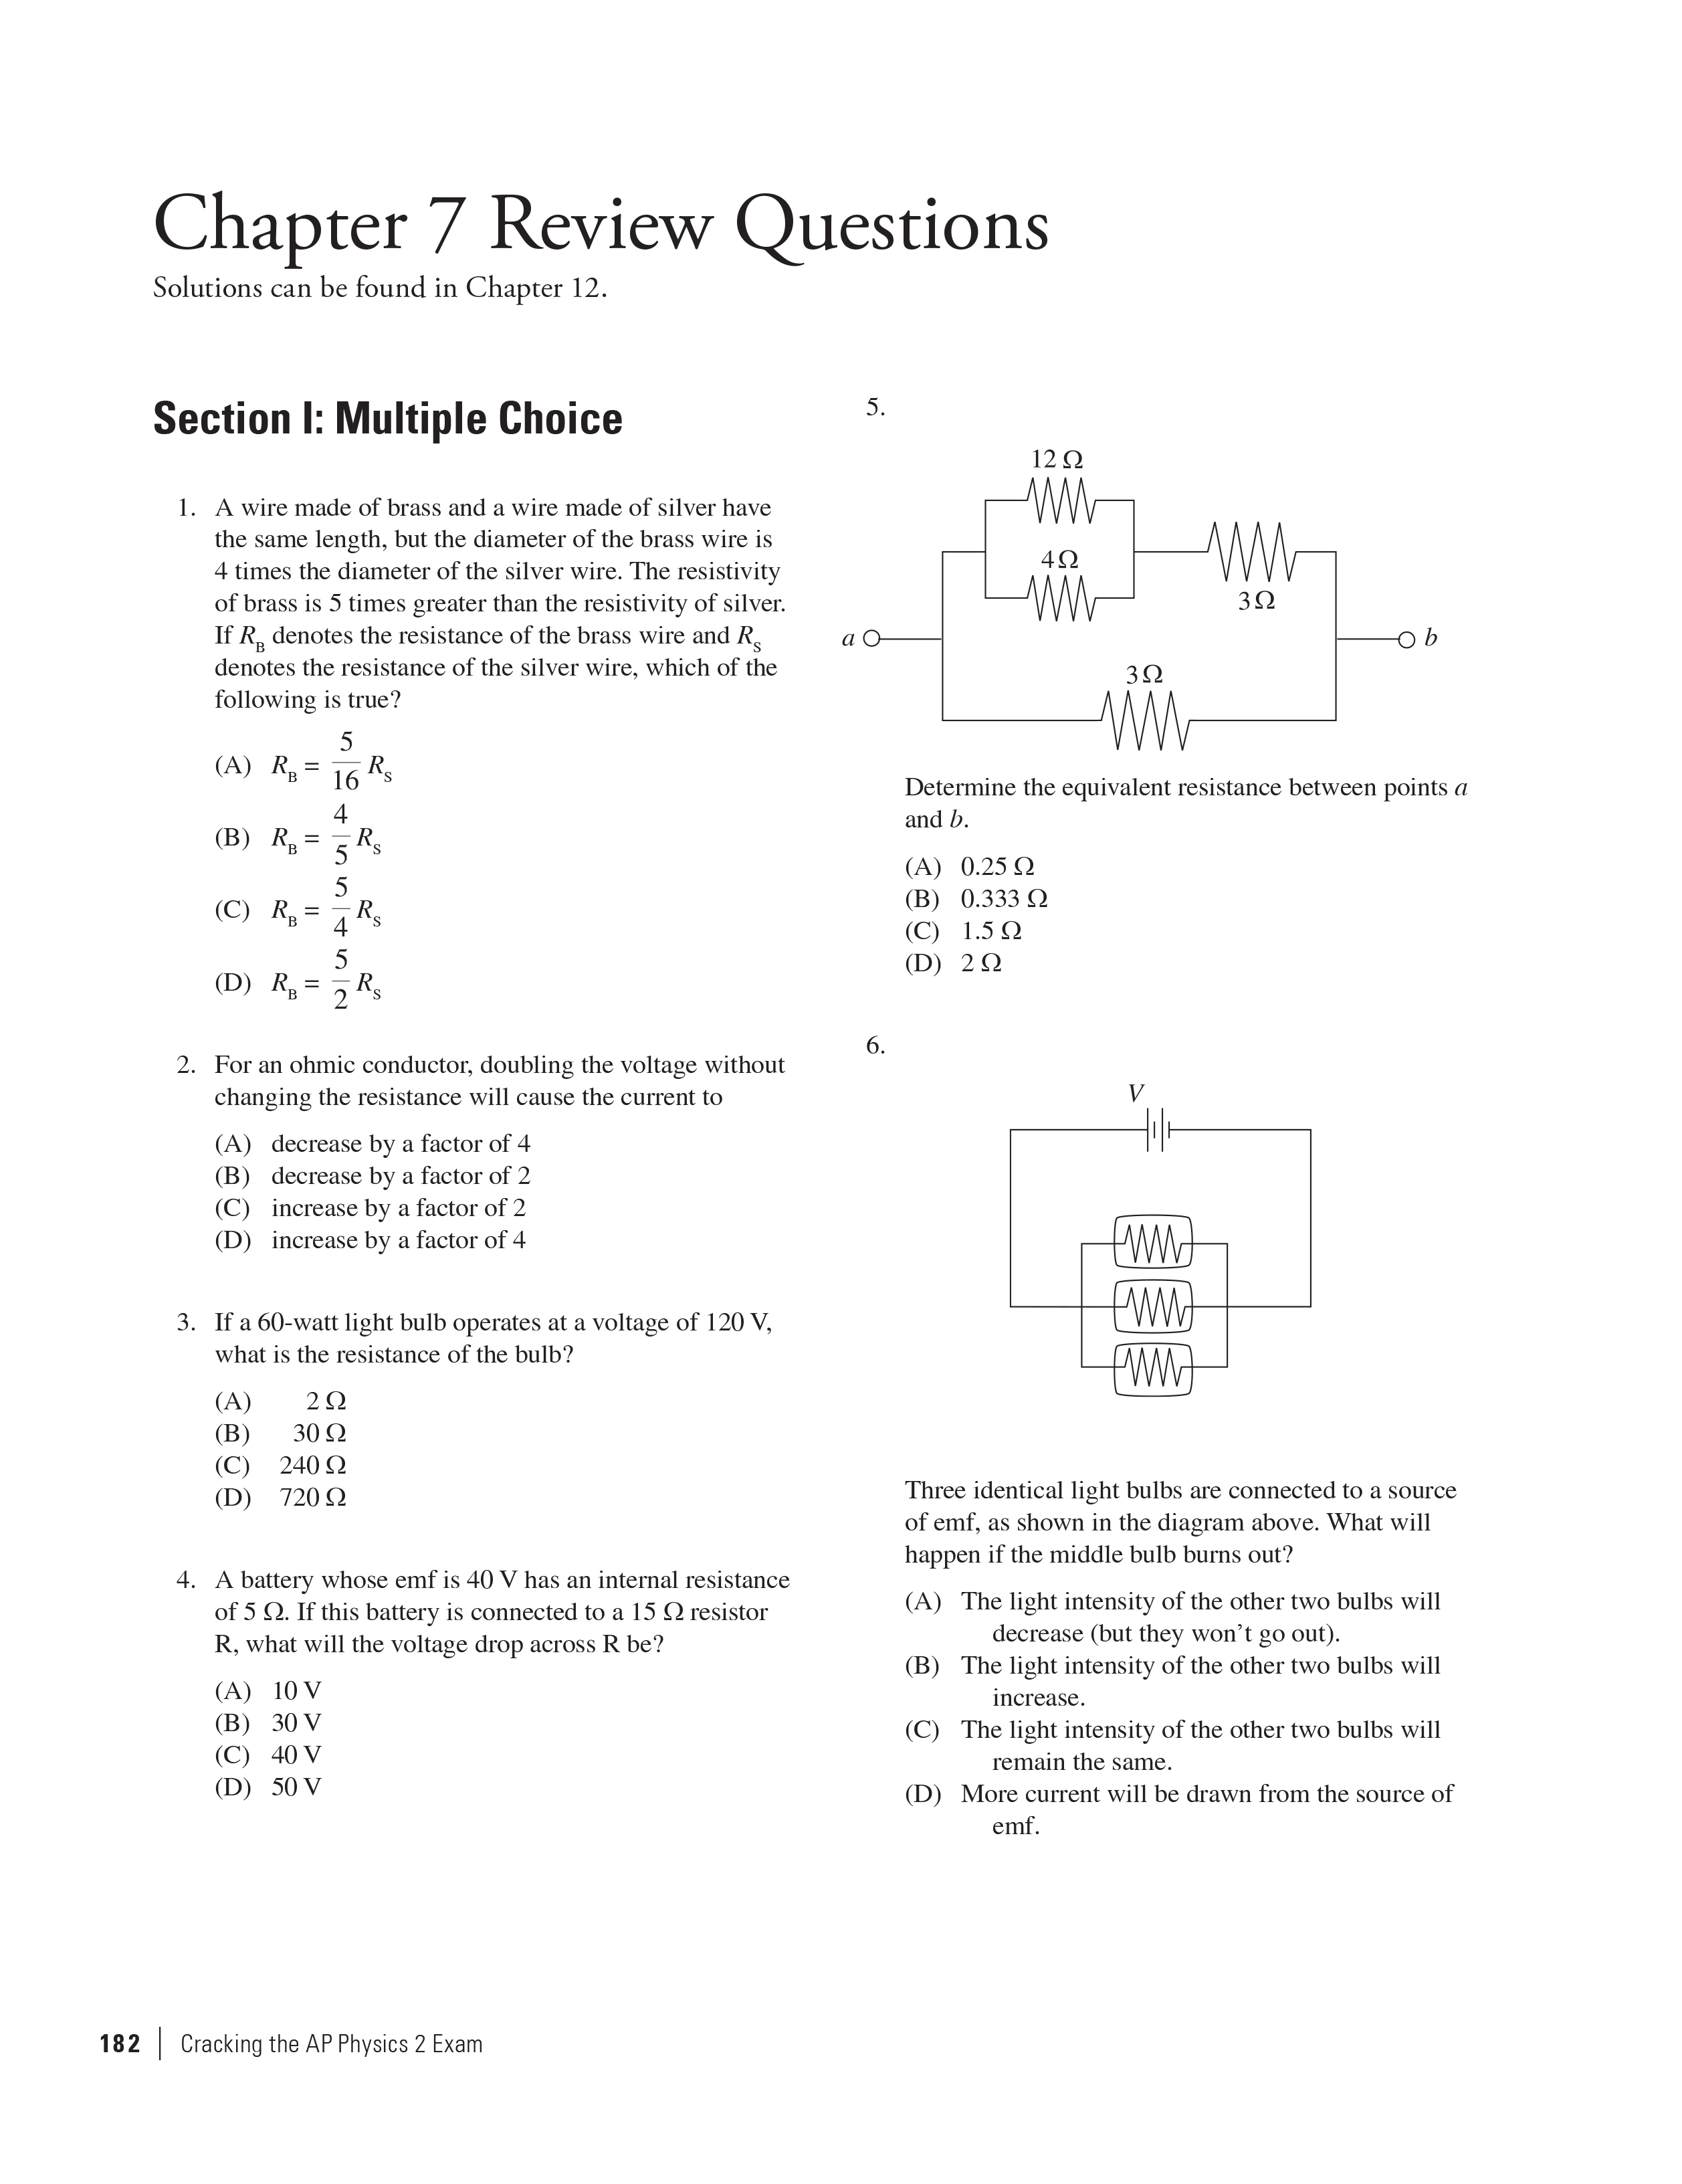 Extended ebook content for Cracking the AP Physics 2 Exam, 2018